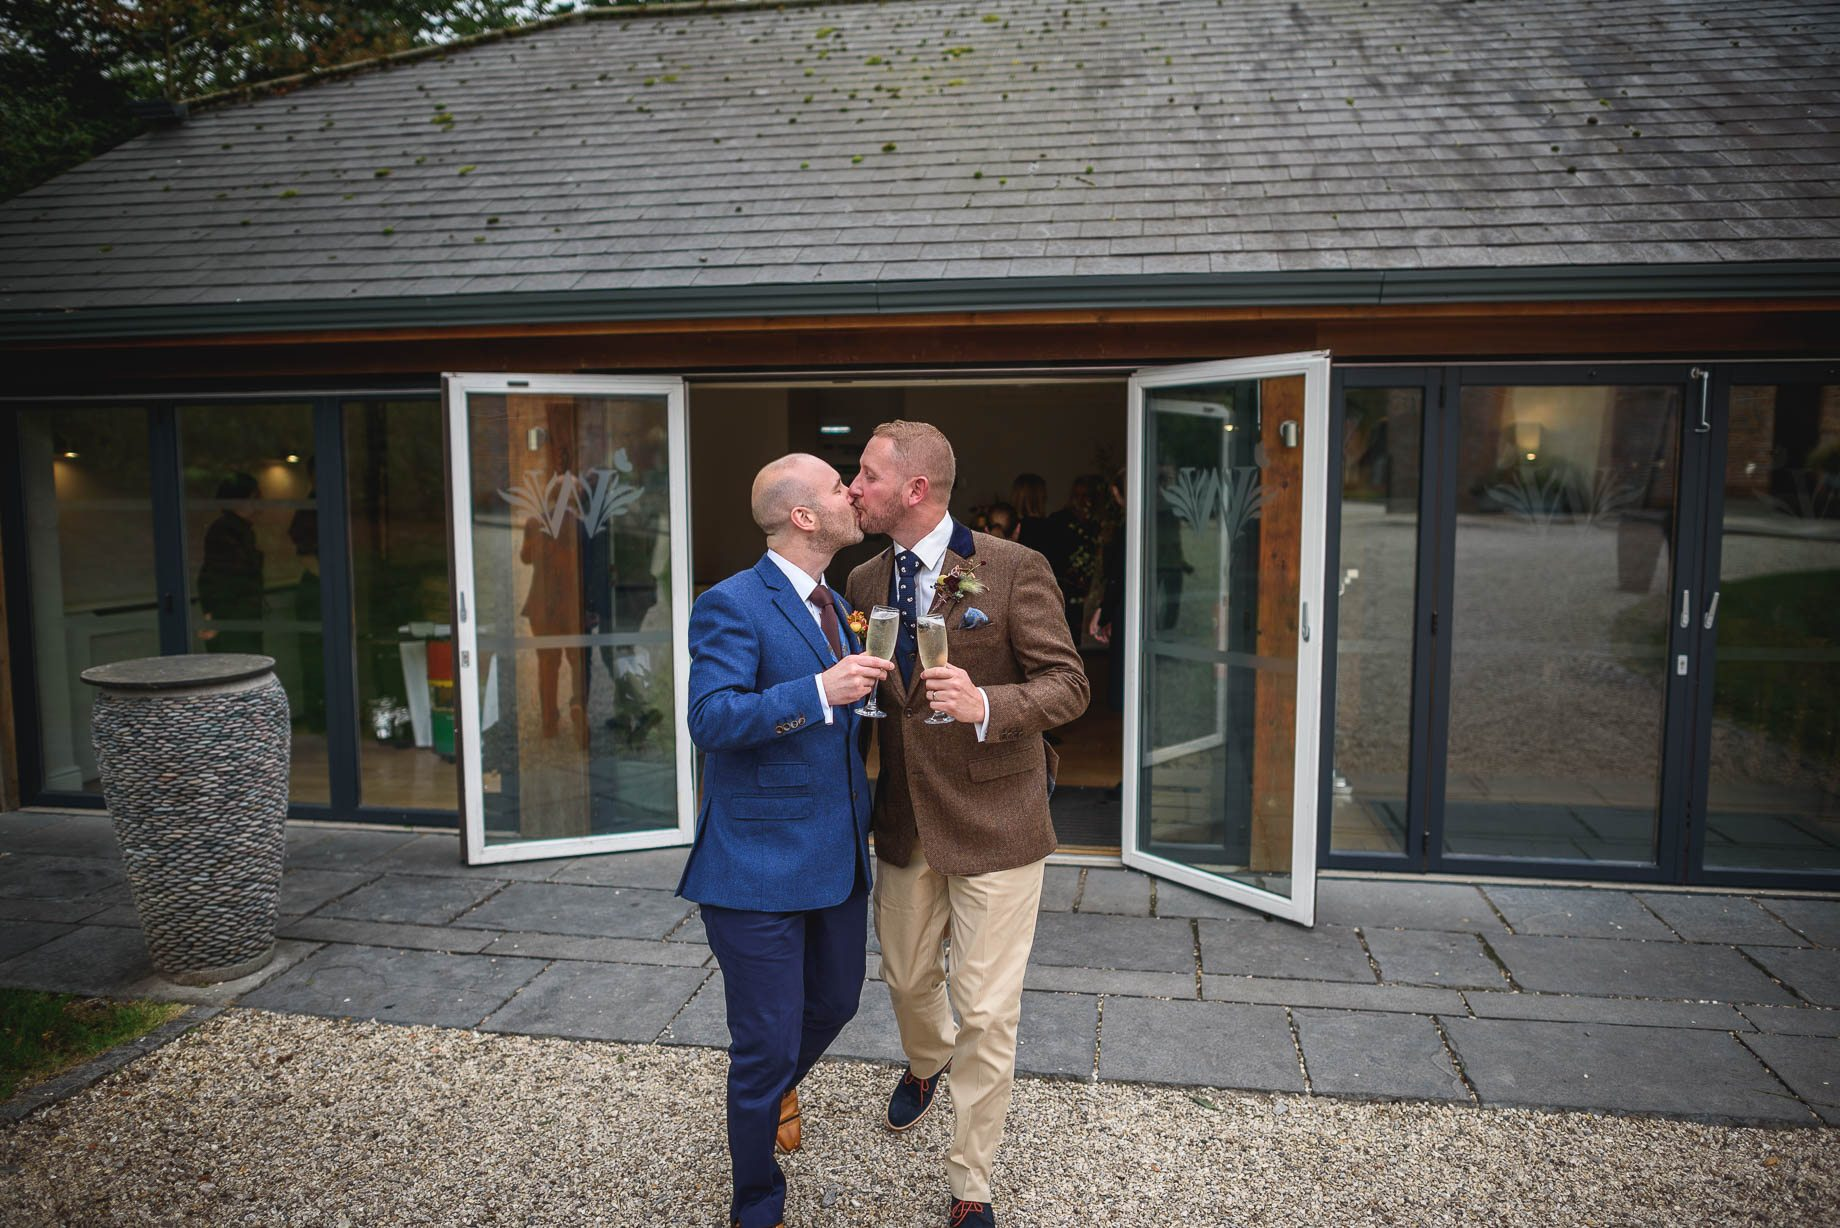 gay-wedding-photography-at-wasing-park-guy-collier-photography-ben-and-stephen-57-of-202